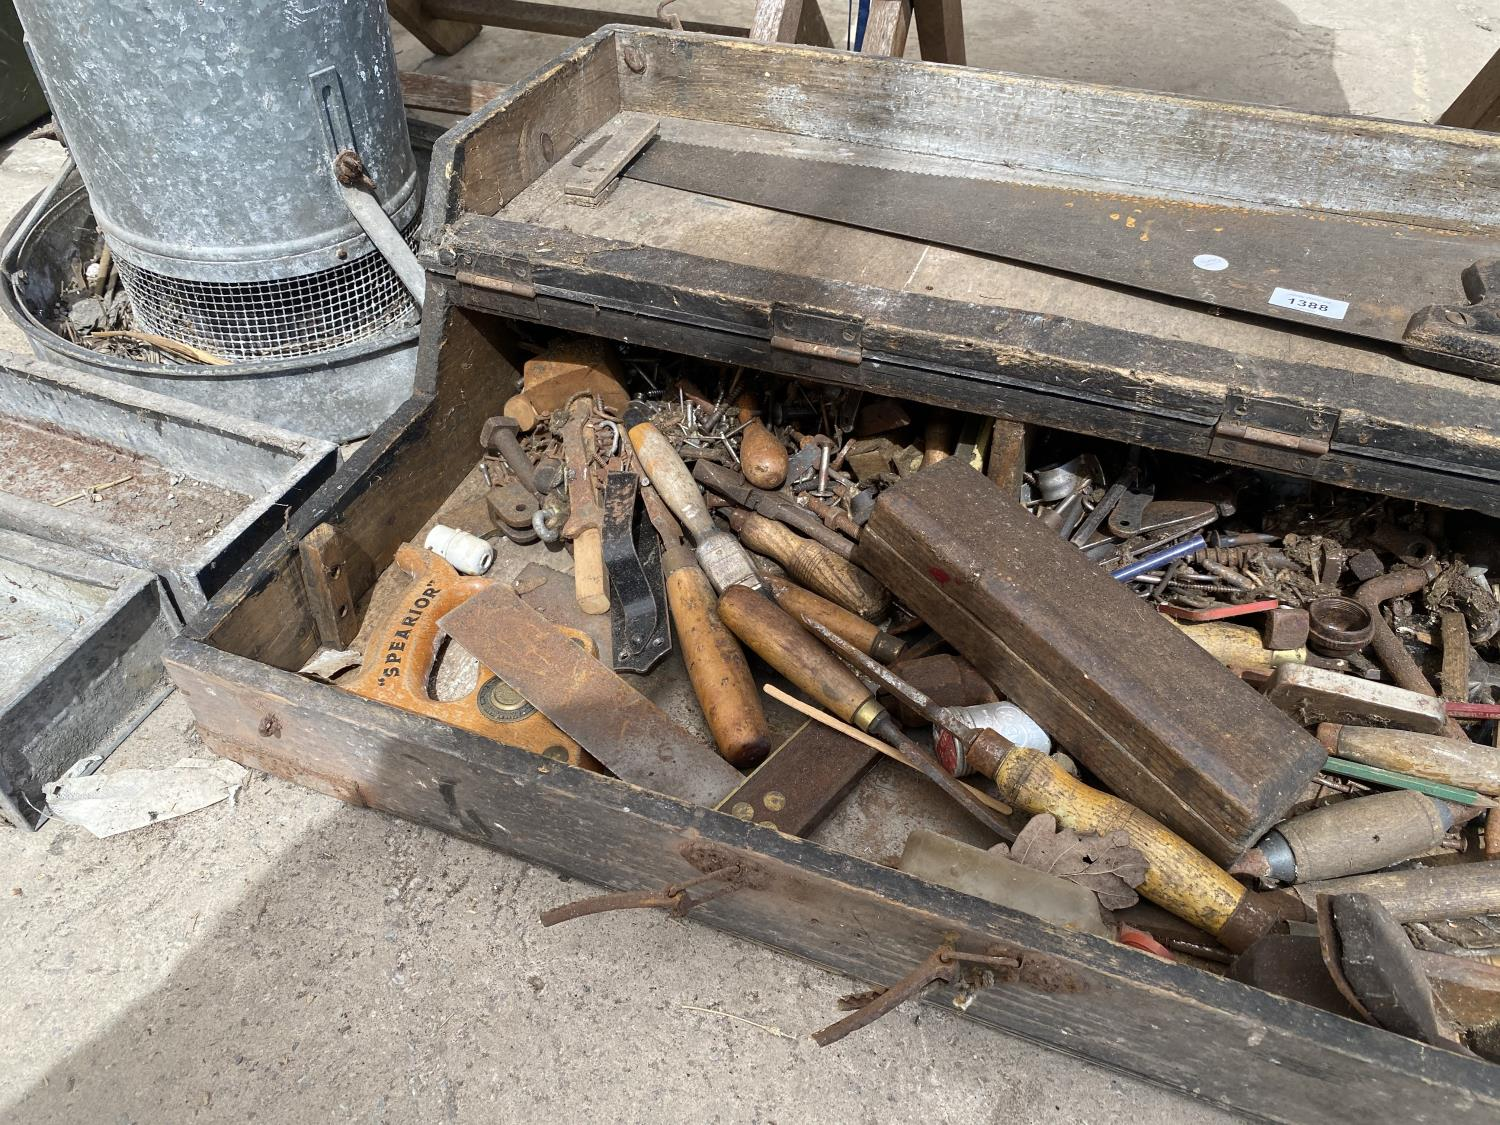 A VINTAGE JOINERS CHEST WITH AN ASSORTMENT OF TOOLS - Image 3 of 4